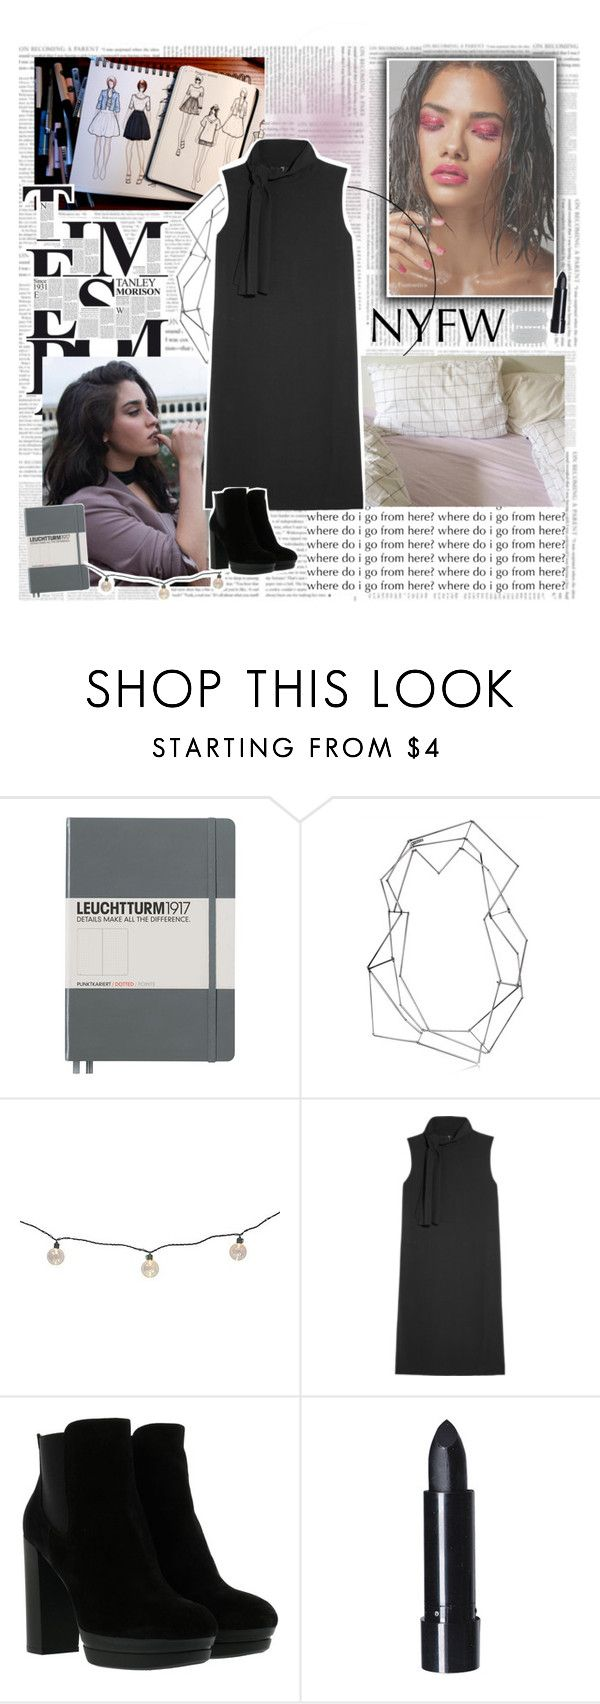 """They tell me that you're dangerous can't be that complicated I'll be the one to change it"" by lefty97 ❤ liked on Polyvore featuring Leuchtturm1917, BANCI GIOIELLI, Threshold, Joseph and Hogan"